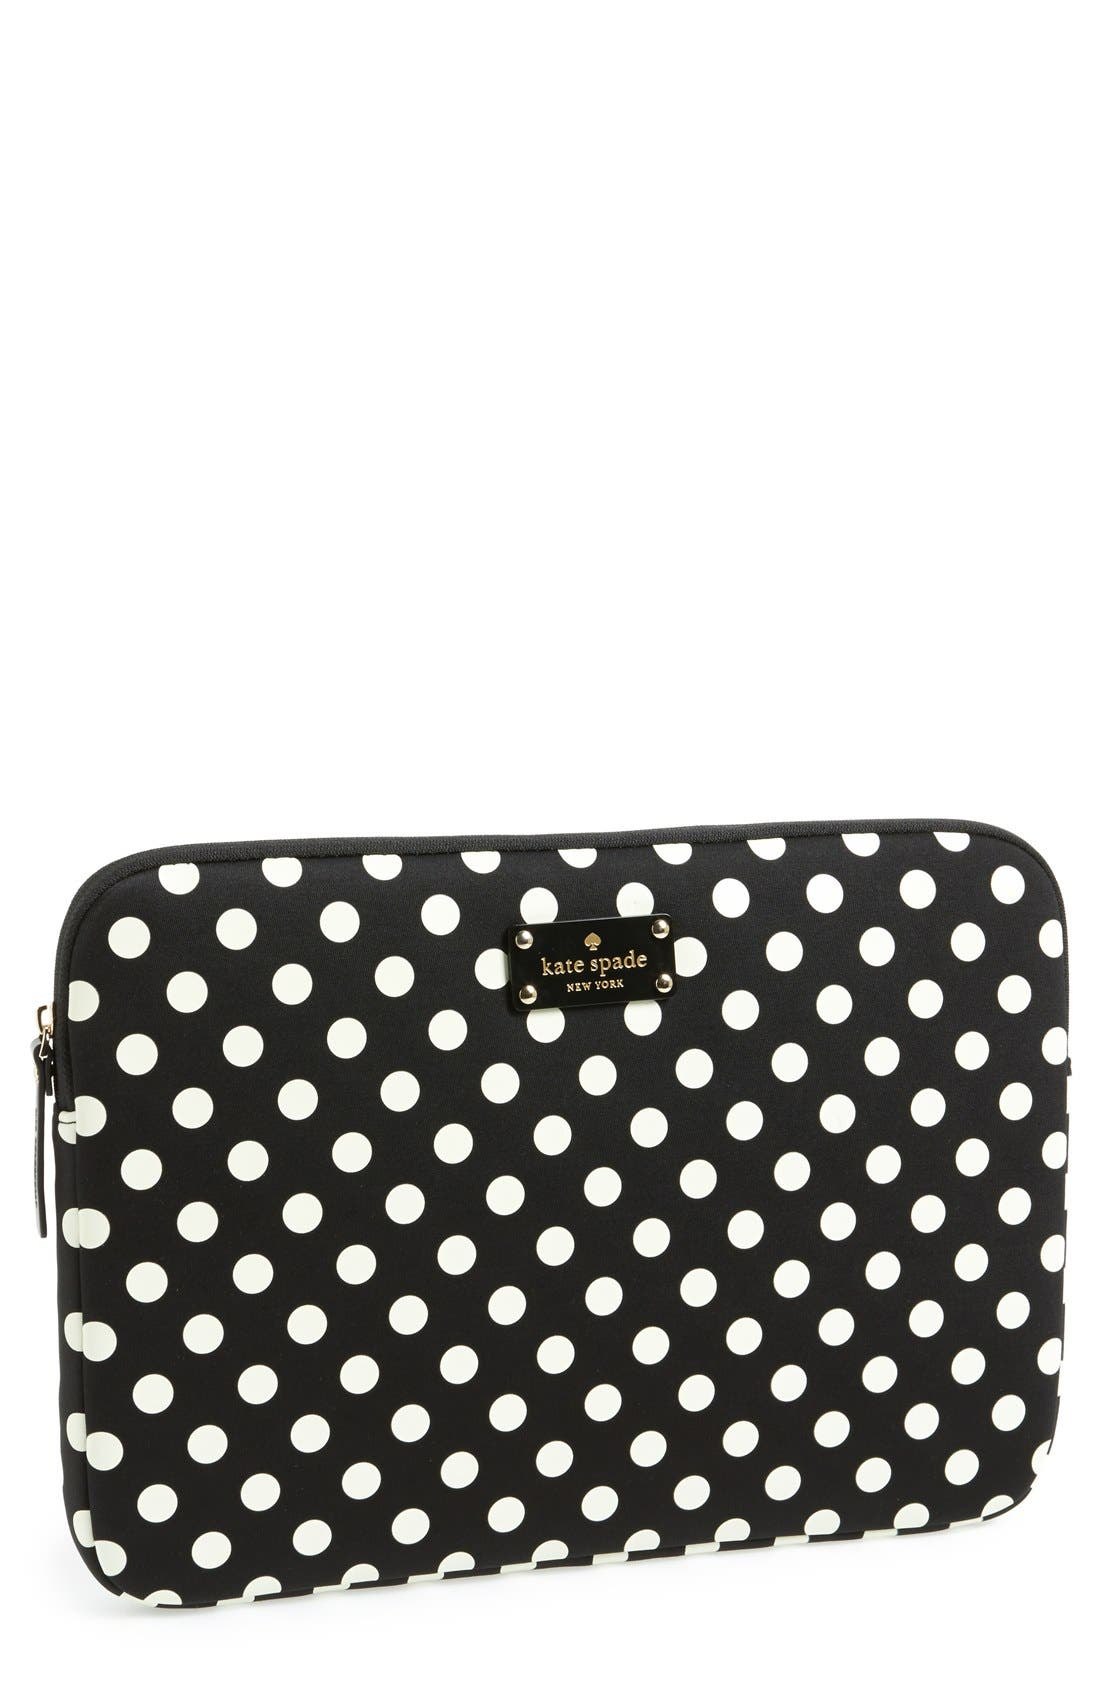 Alternate Image 1 Selected - kate spade new york 'la pavillion' laptop sleeve (13 Inch)